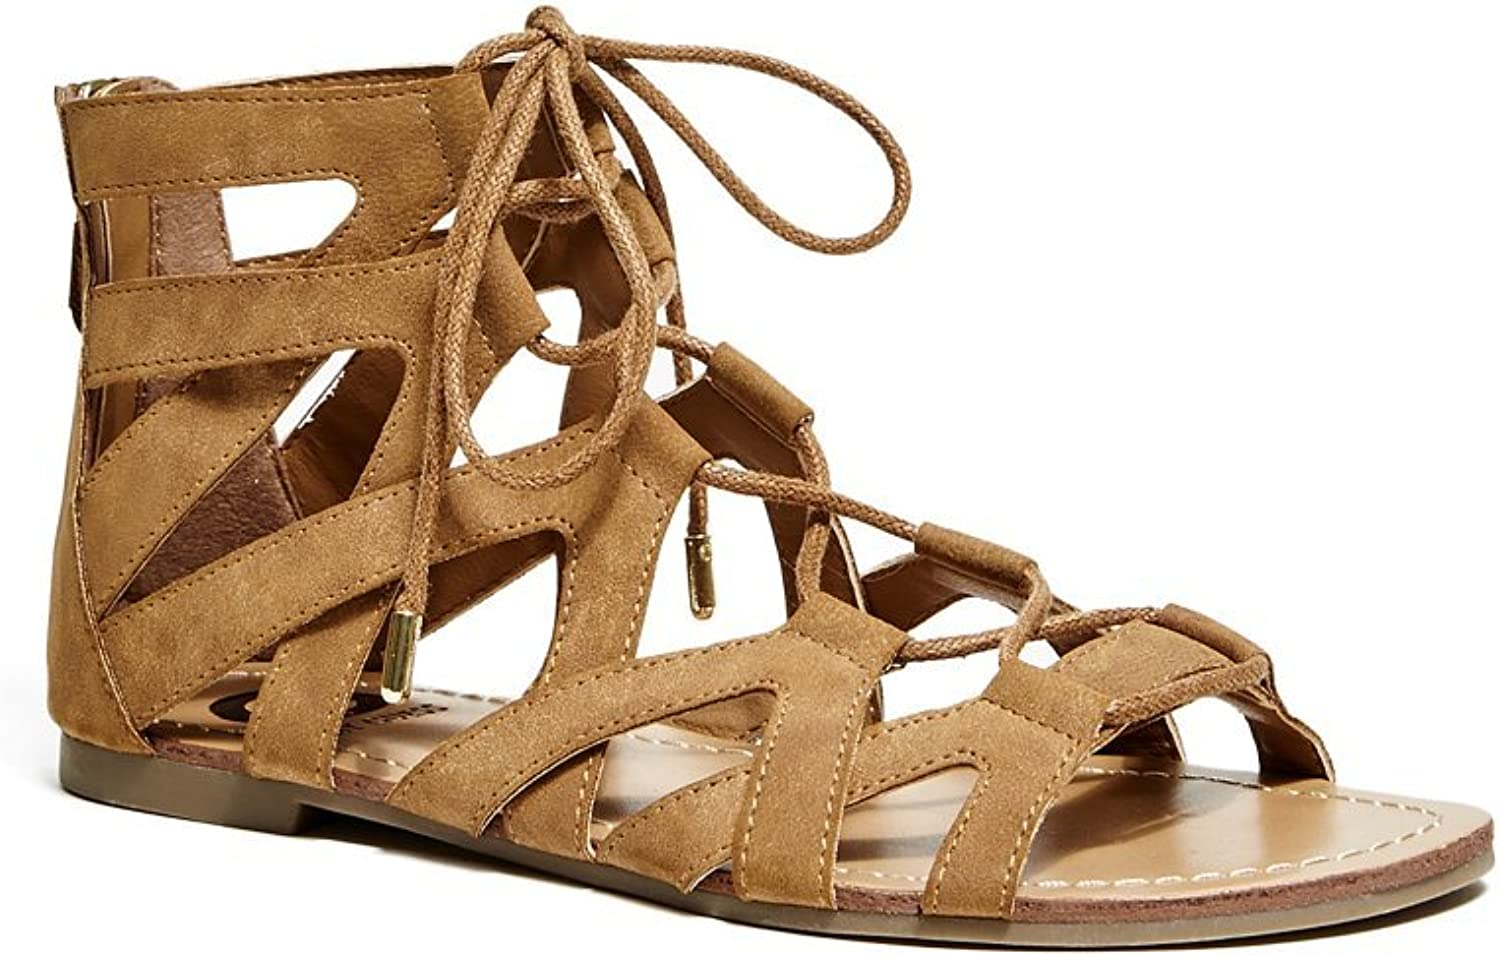 G By Guess Lookie Women's Gladiator Sandal